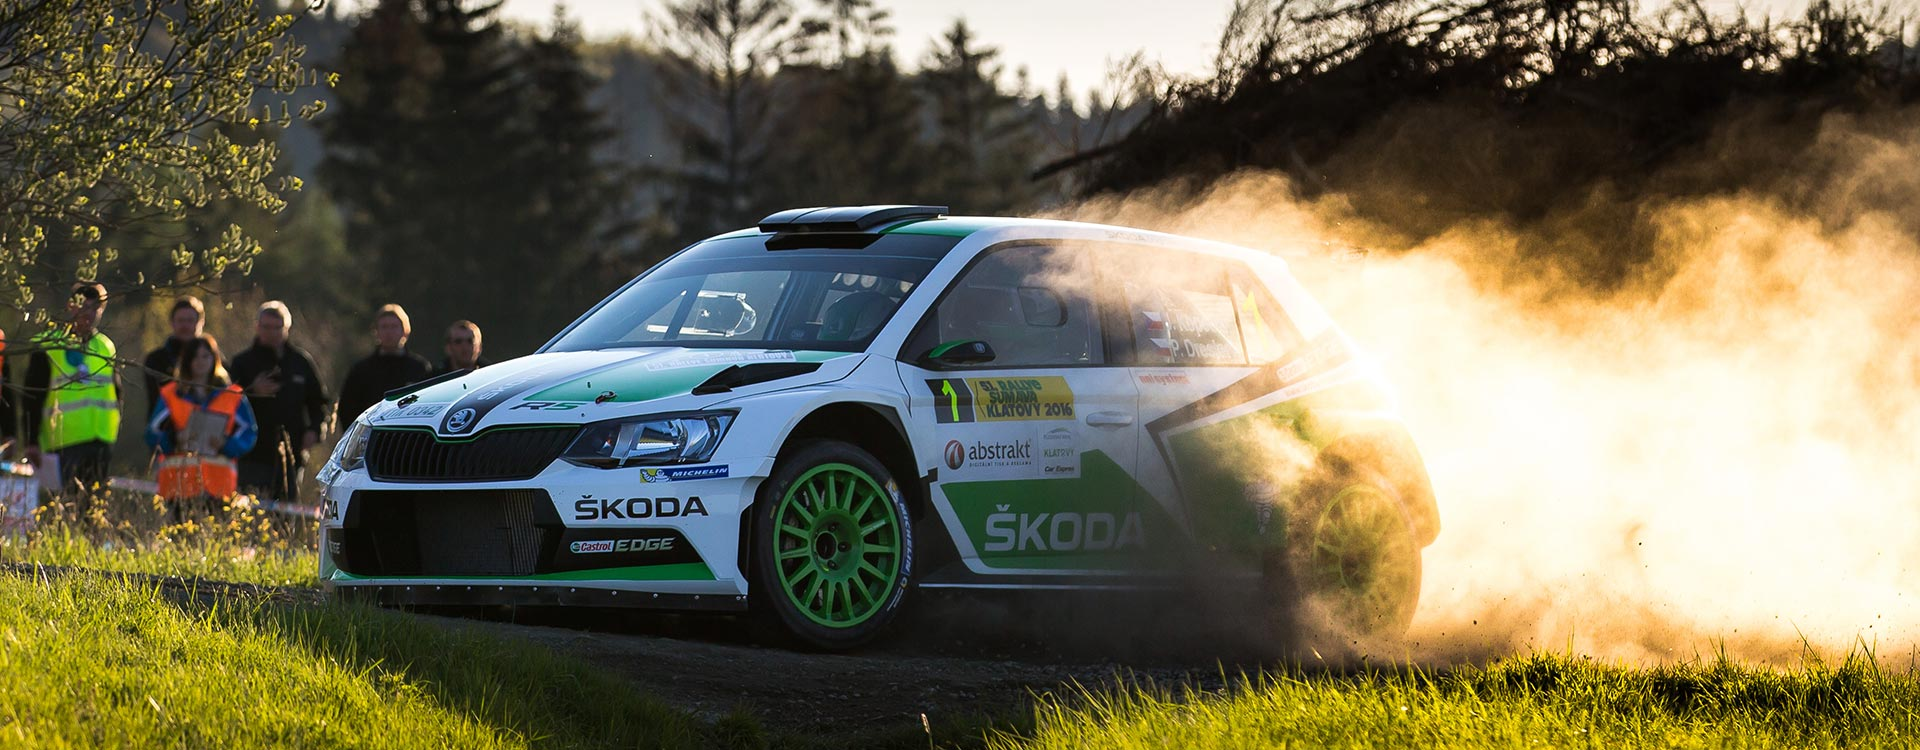 PHOTO: ŠKODA Motorsport at the Rallye Šumava Klatovy